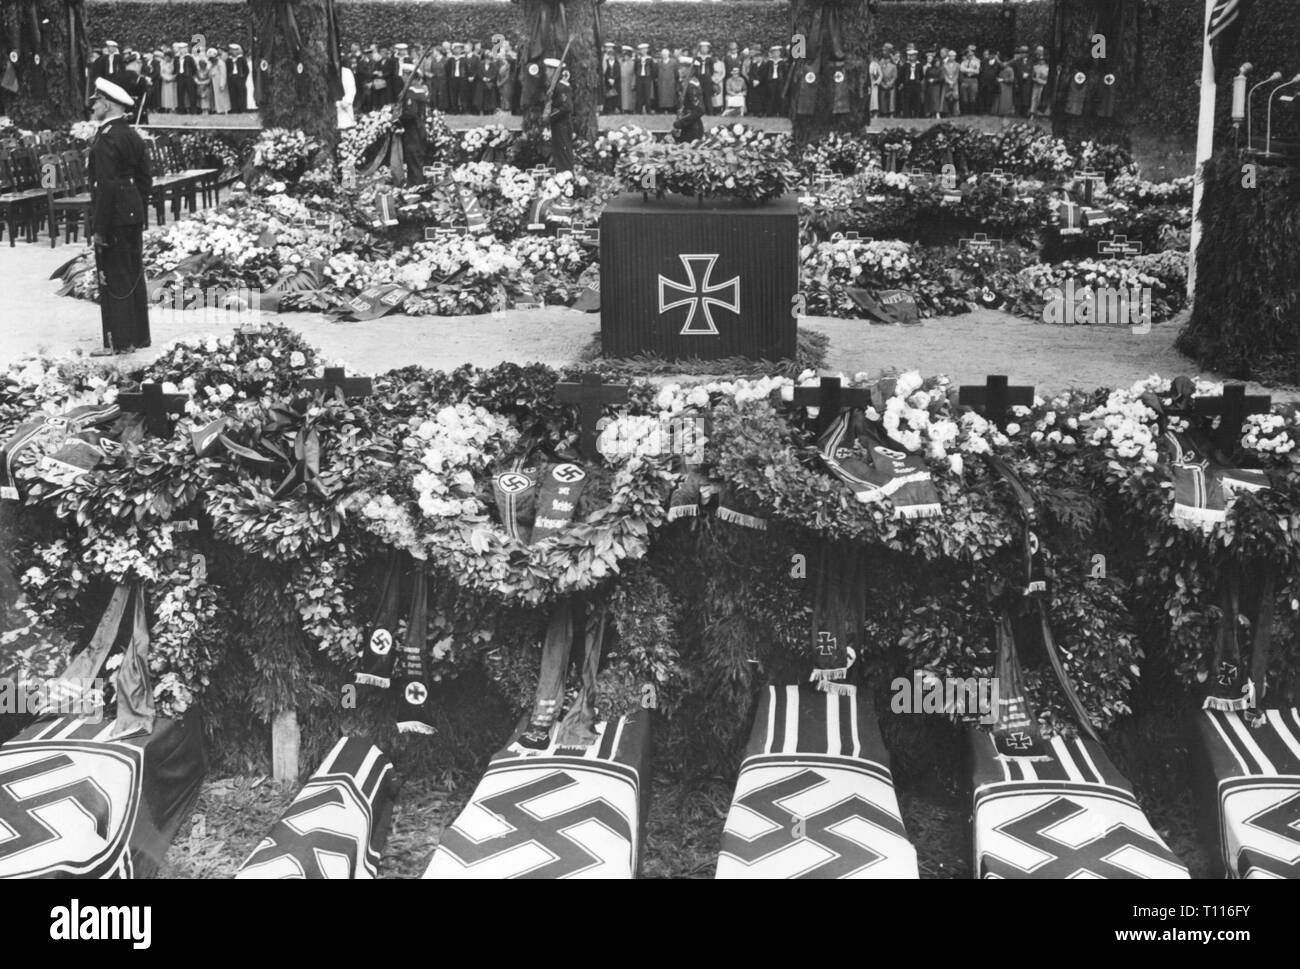 Spanish Civil War 1936 - 1939, bomb attack on the German ironclad 'Deutschland' at Ibiza on 29.5.1937, the coffins the dead in the cemetery the navy, city park, Wilhelmshaven, 17.6.1937, Additional-Rights-Clearance-Info-Not-Available - Stock Image